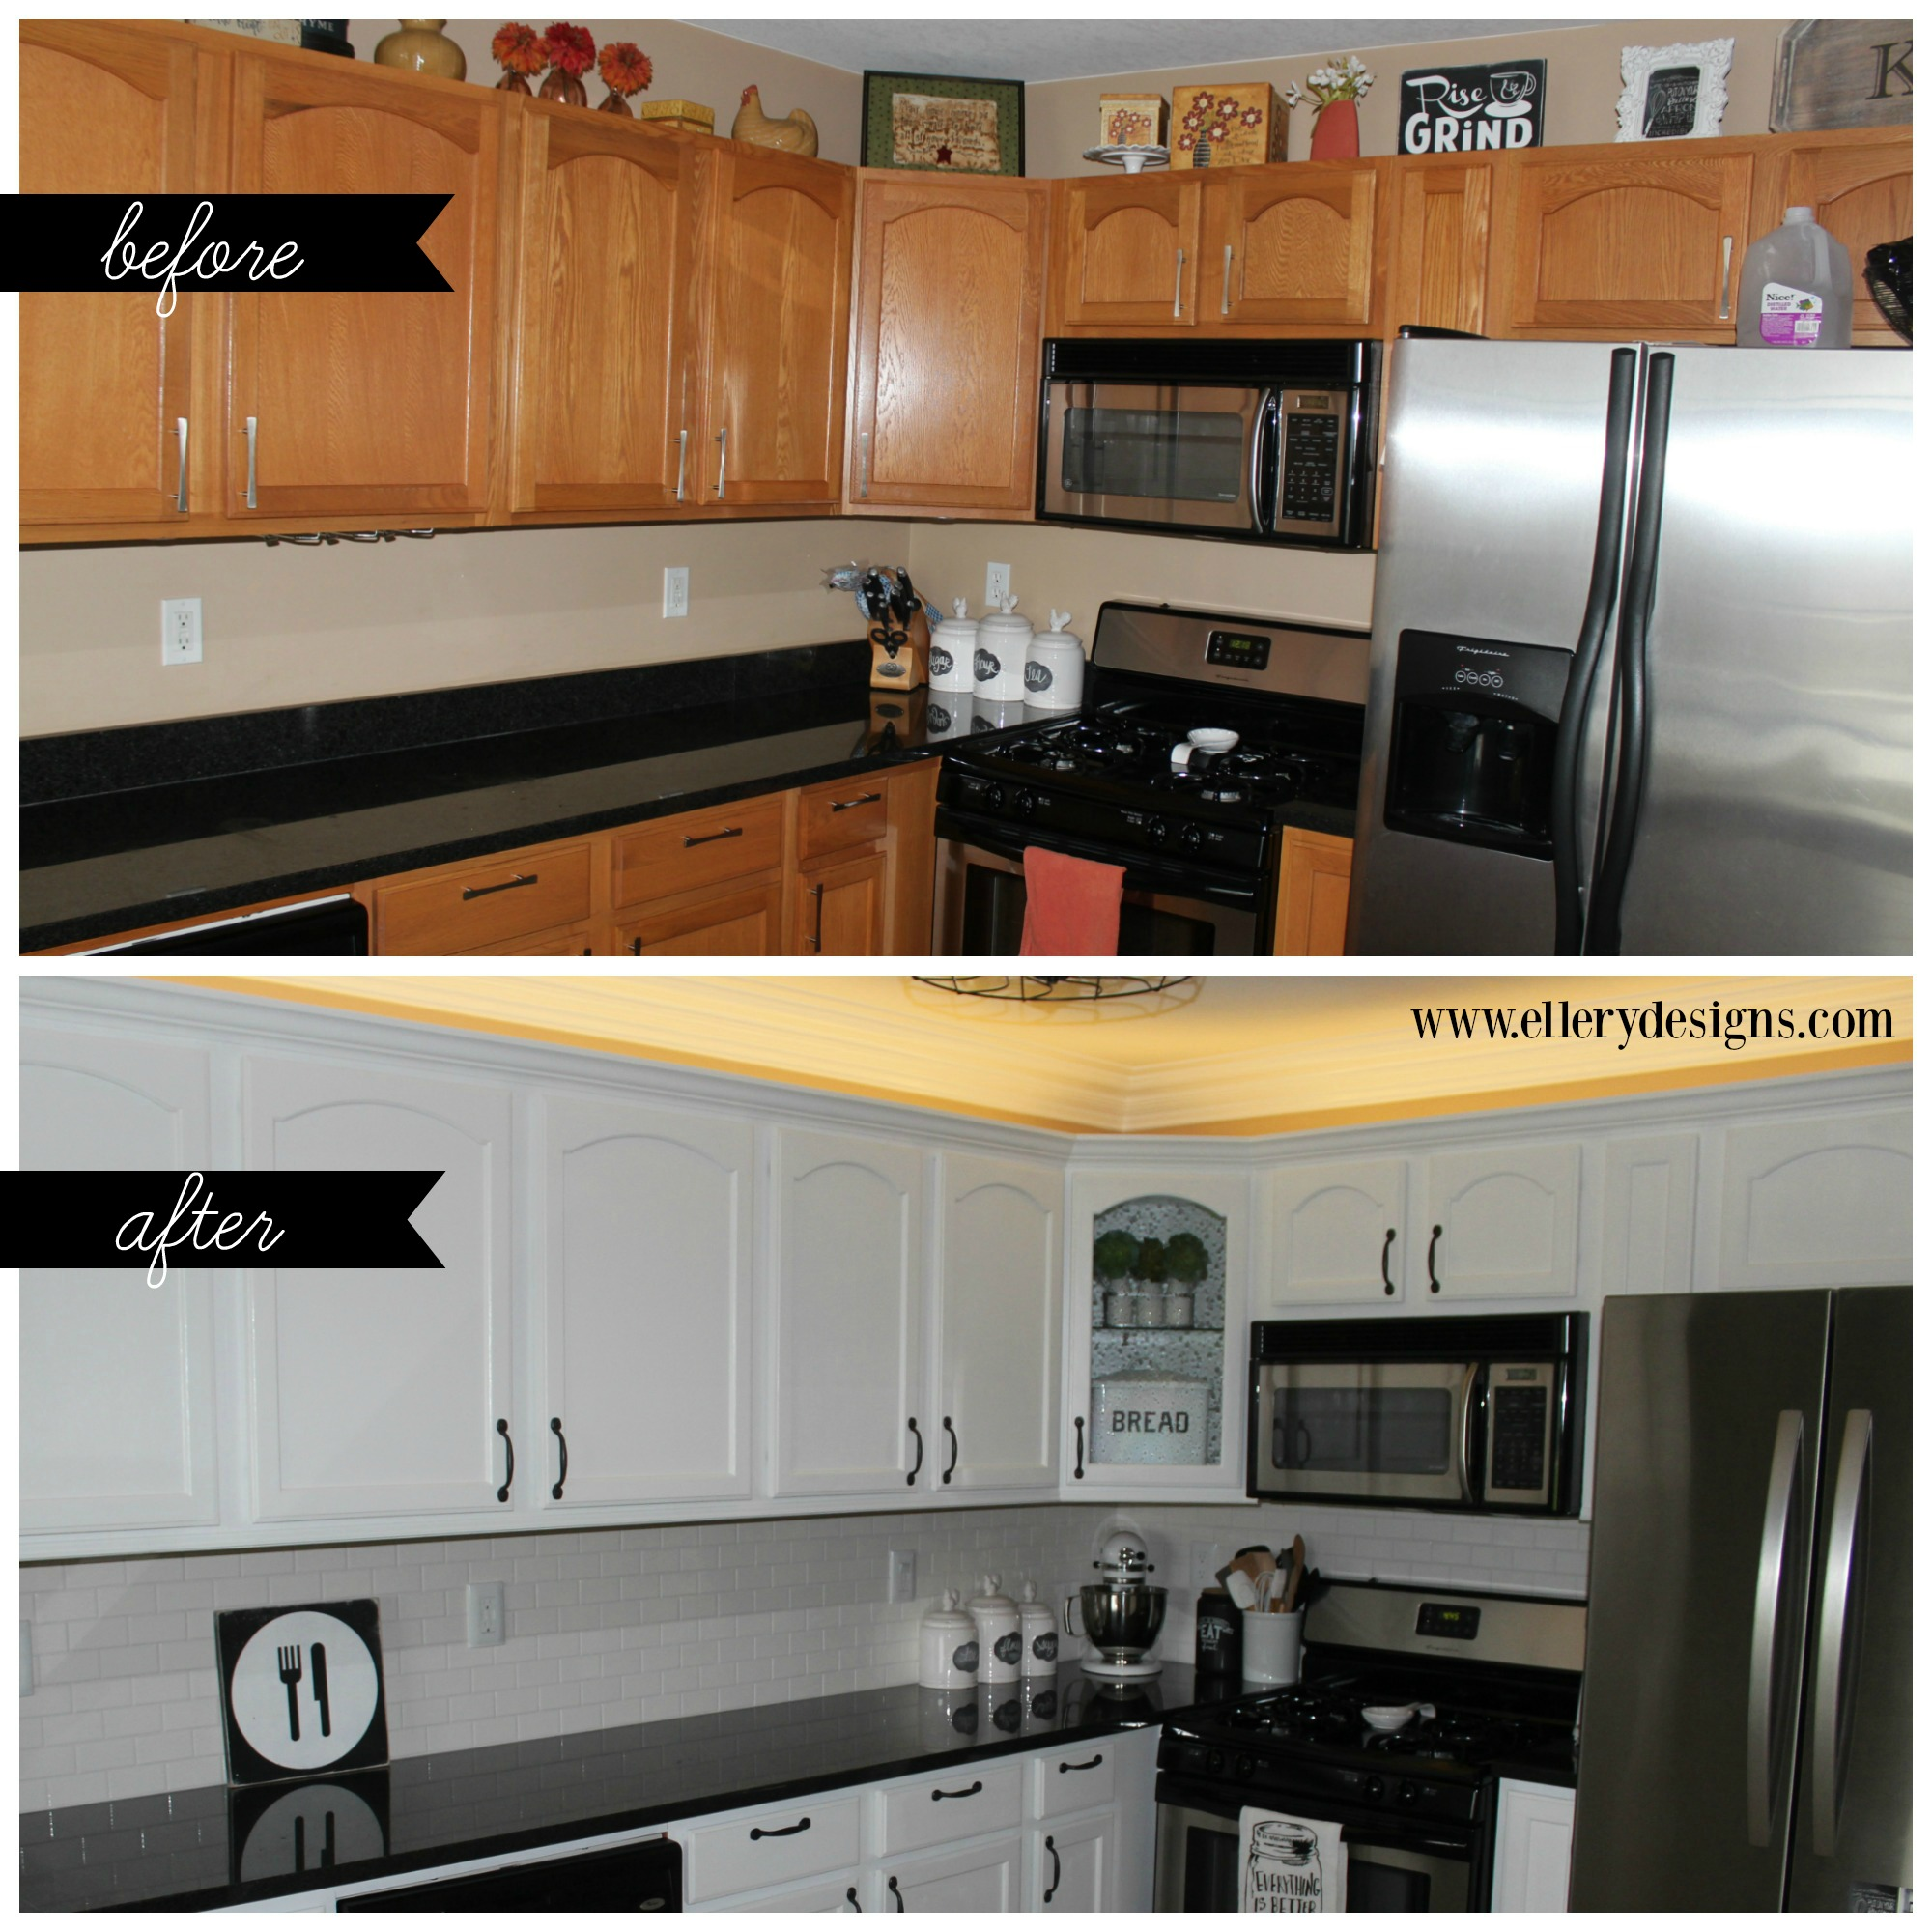 Our diy kitchen remodel the full reveal ellery designs for What finish paint for kitchen cabinets